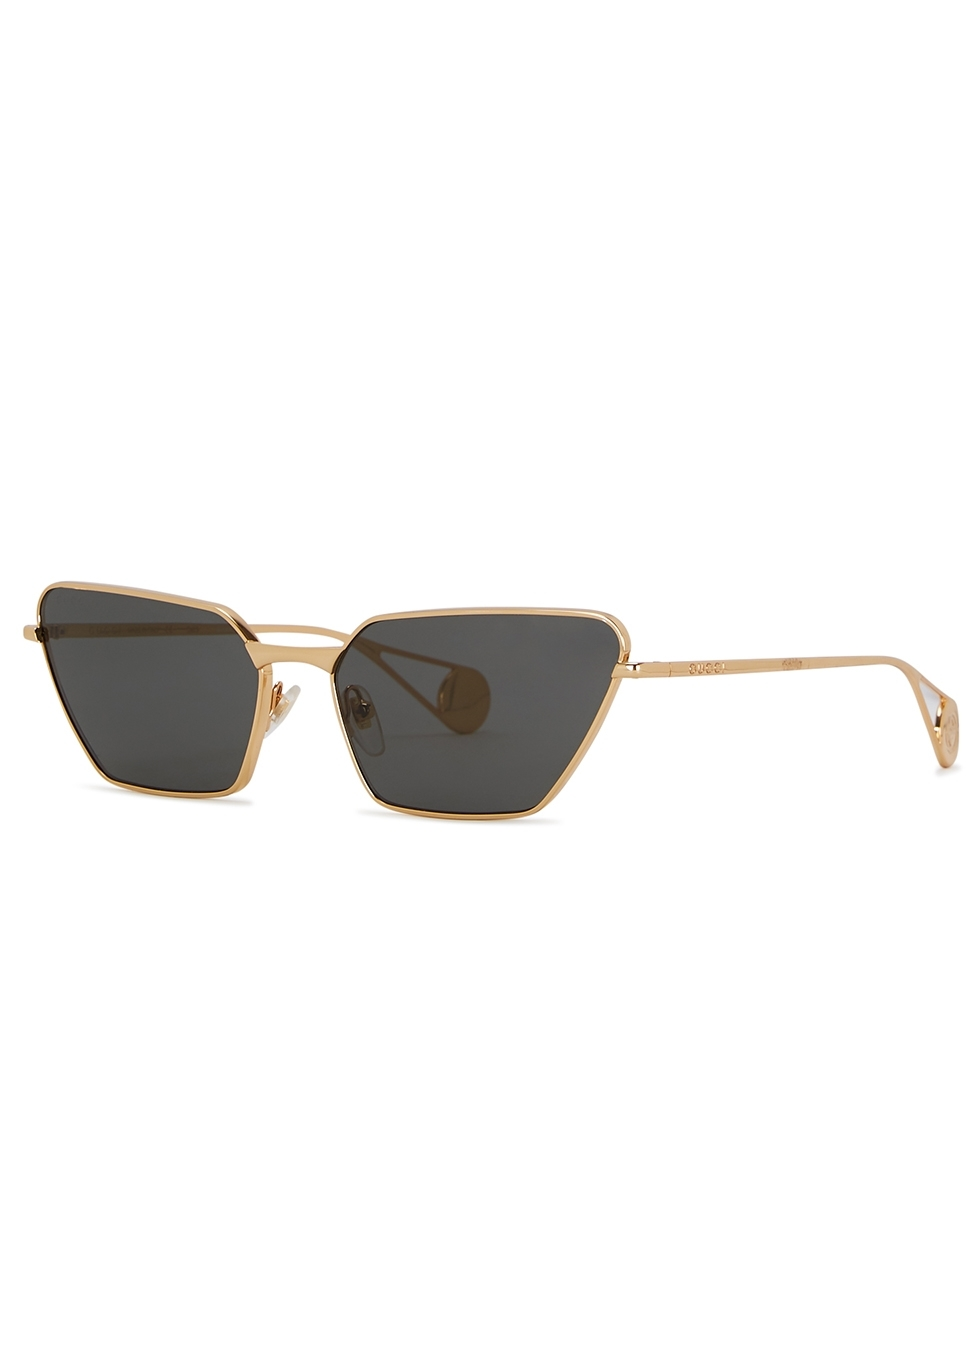 bb83c2a3a7564 Women s Designer Sunglasses and Eyewear - Harvey Nichols